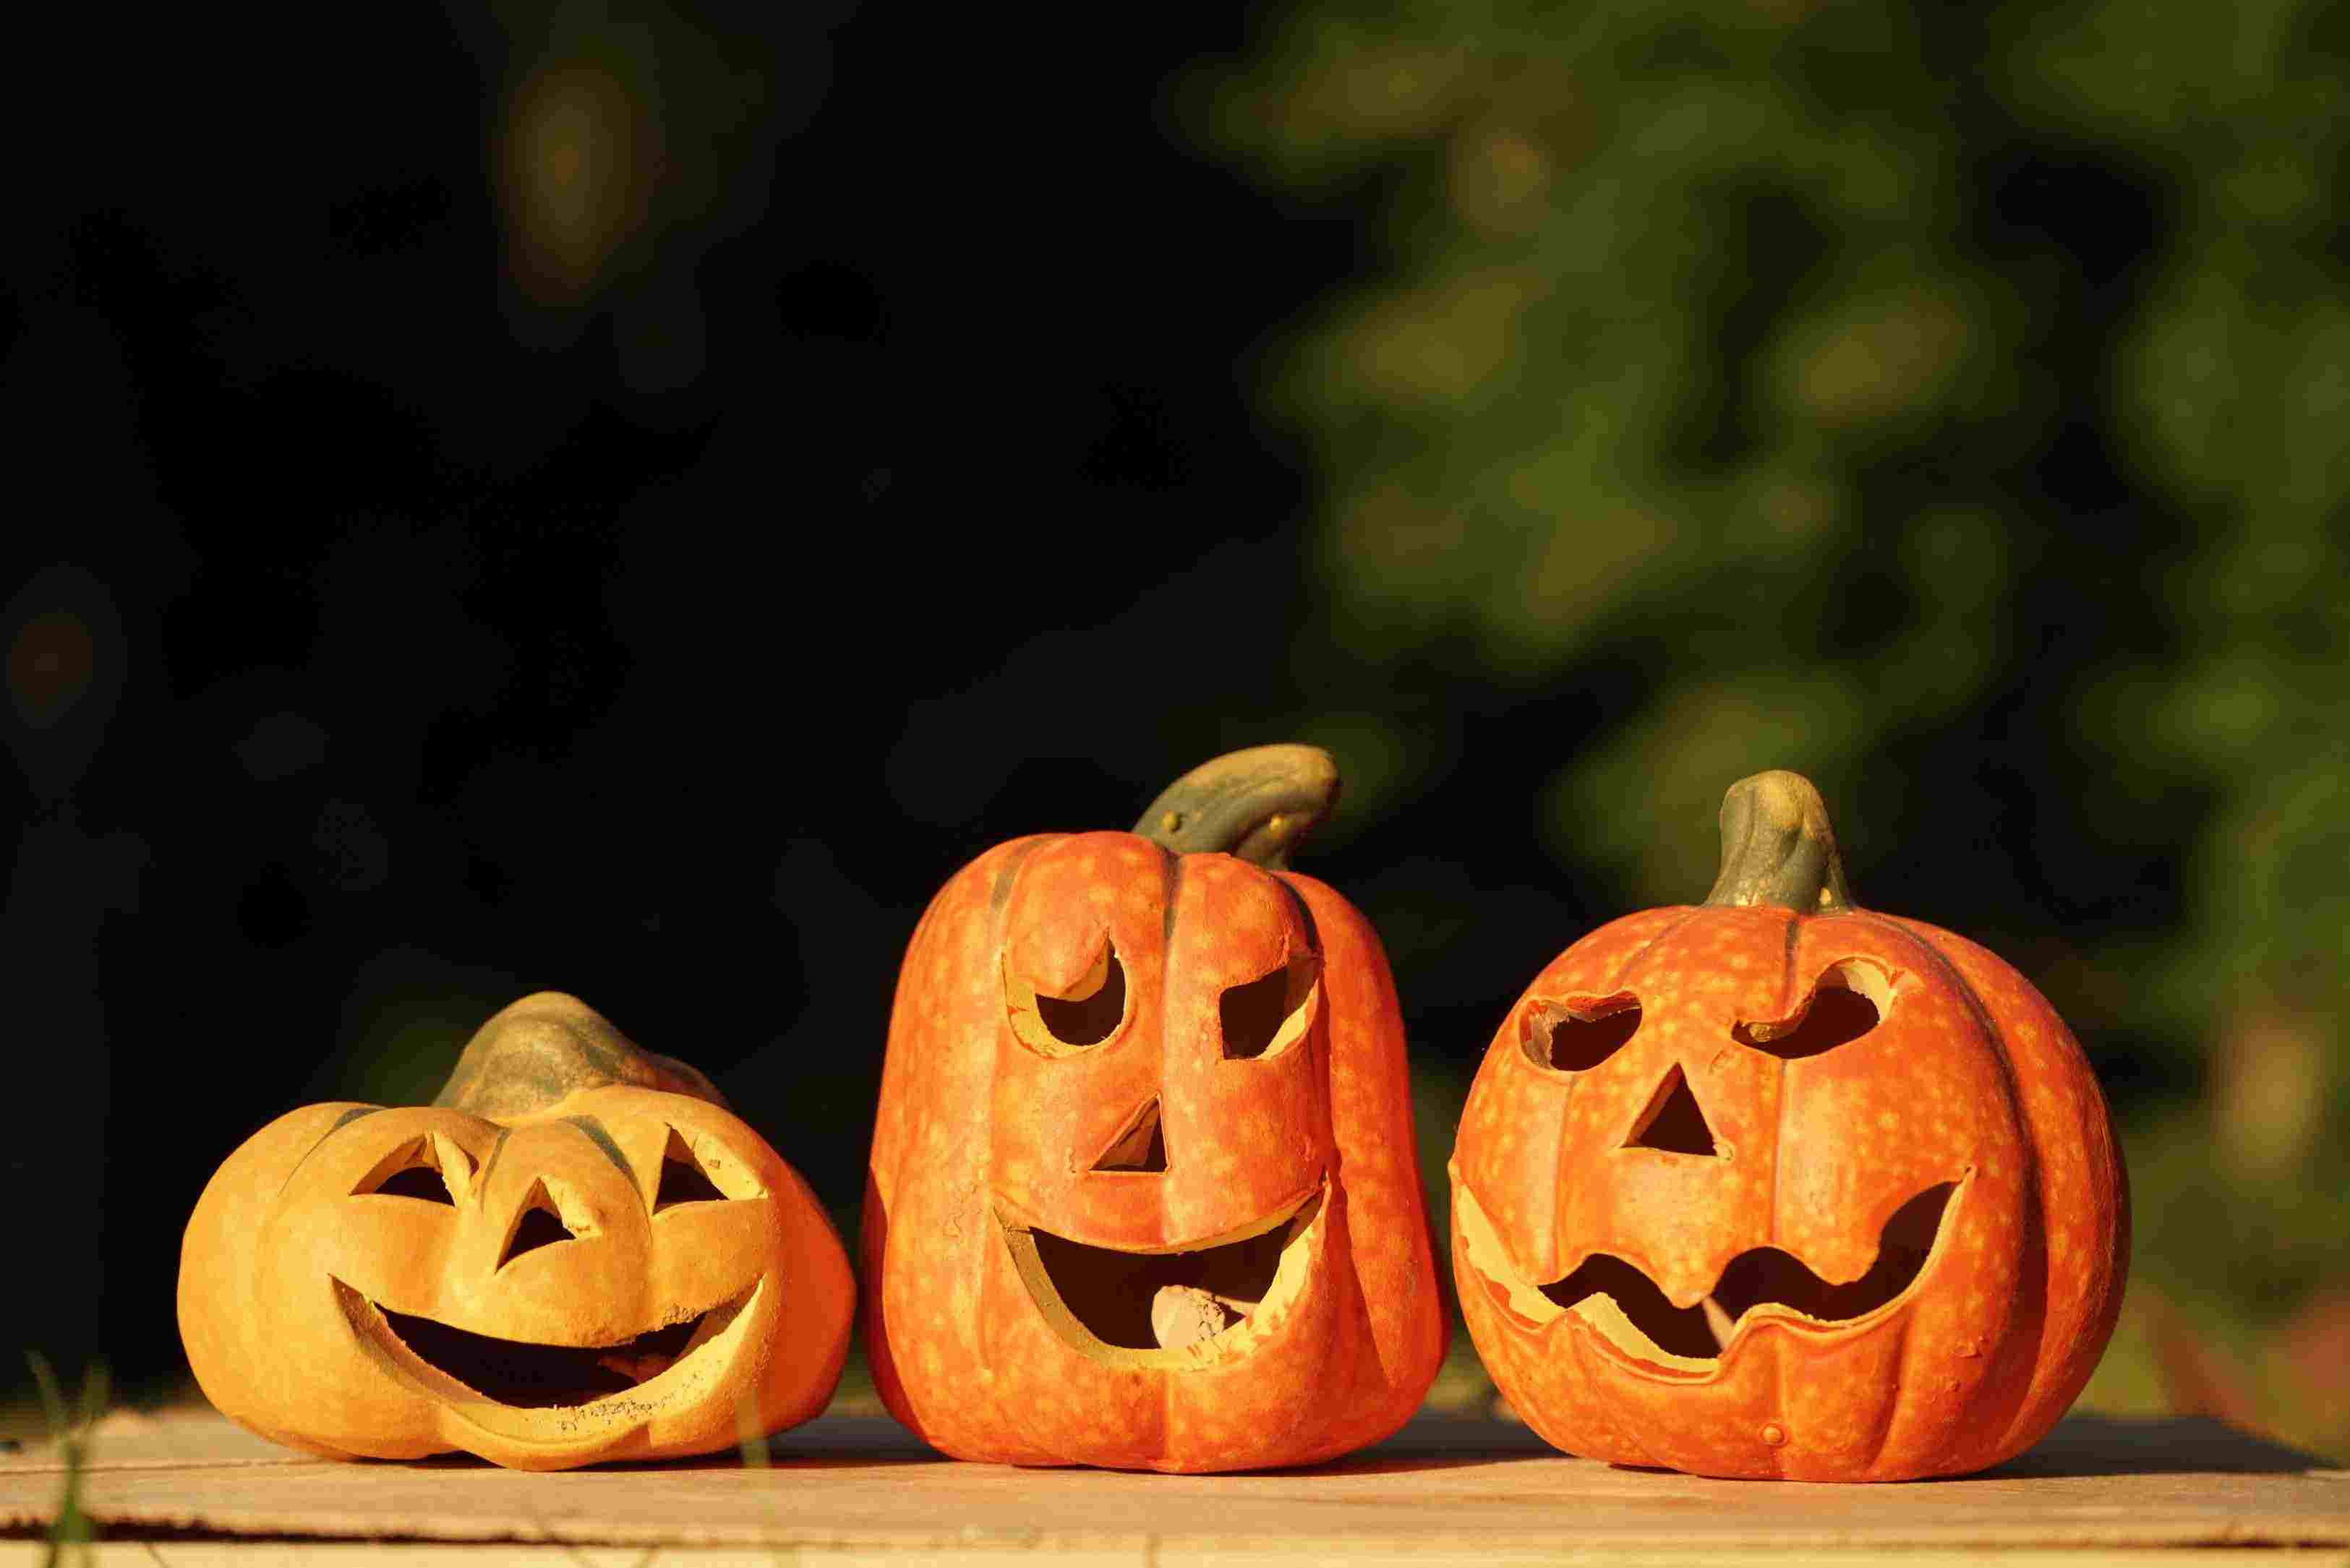 Free Scary Pumpkin Stencils Luxury From Free Pumpkin Carving - Scary Pumpkin Stencils Free Printable